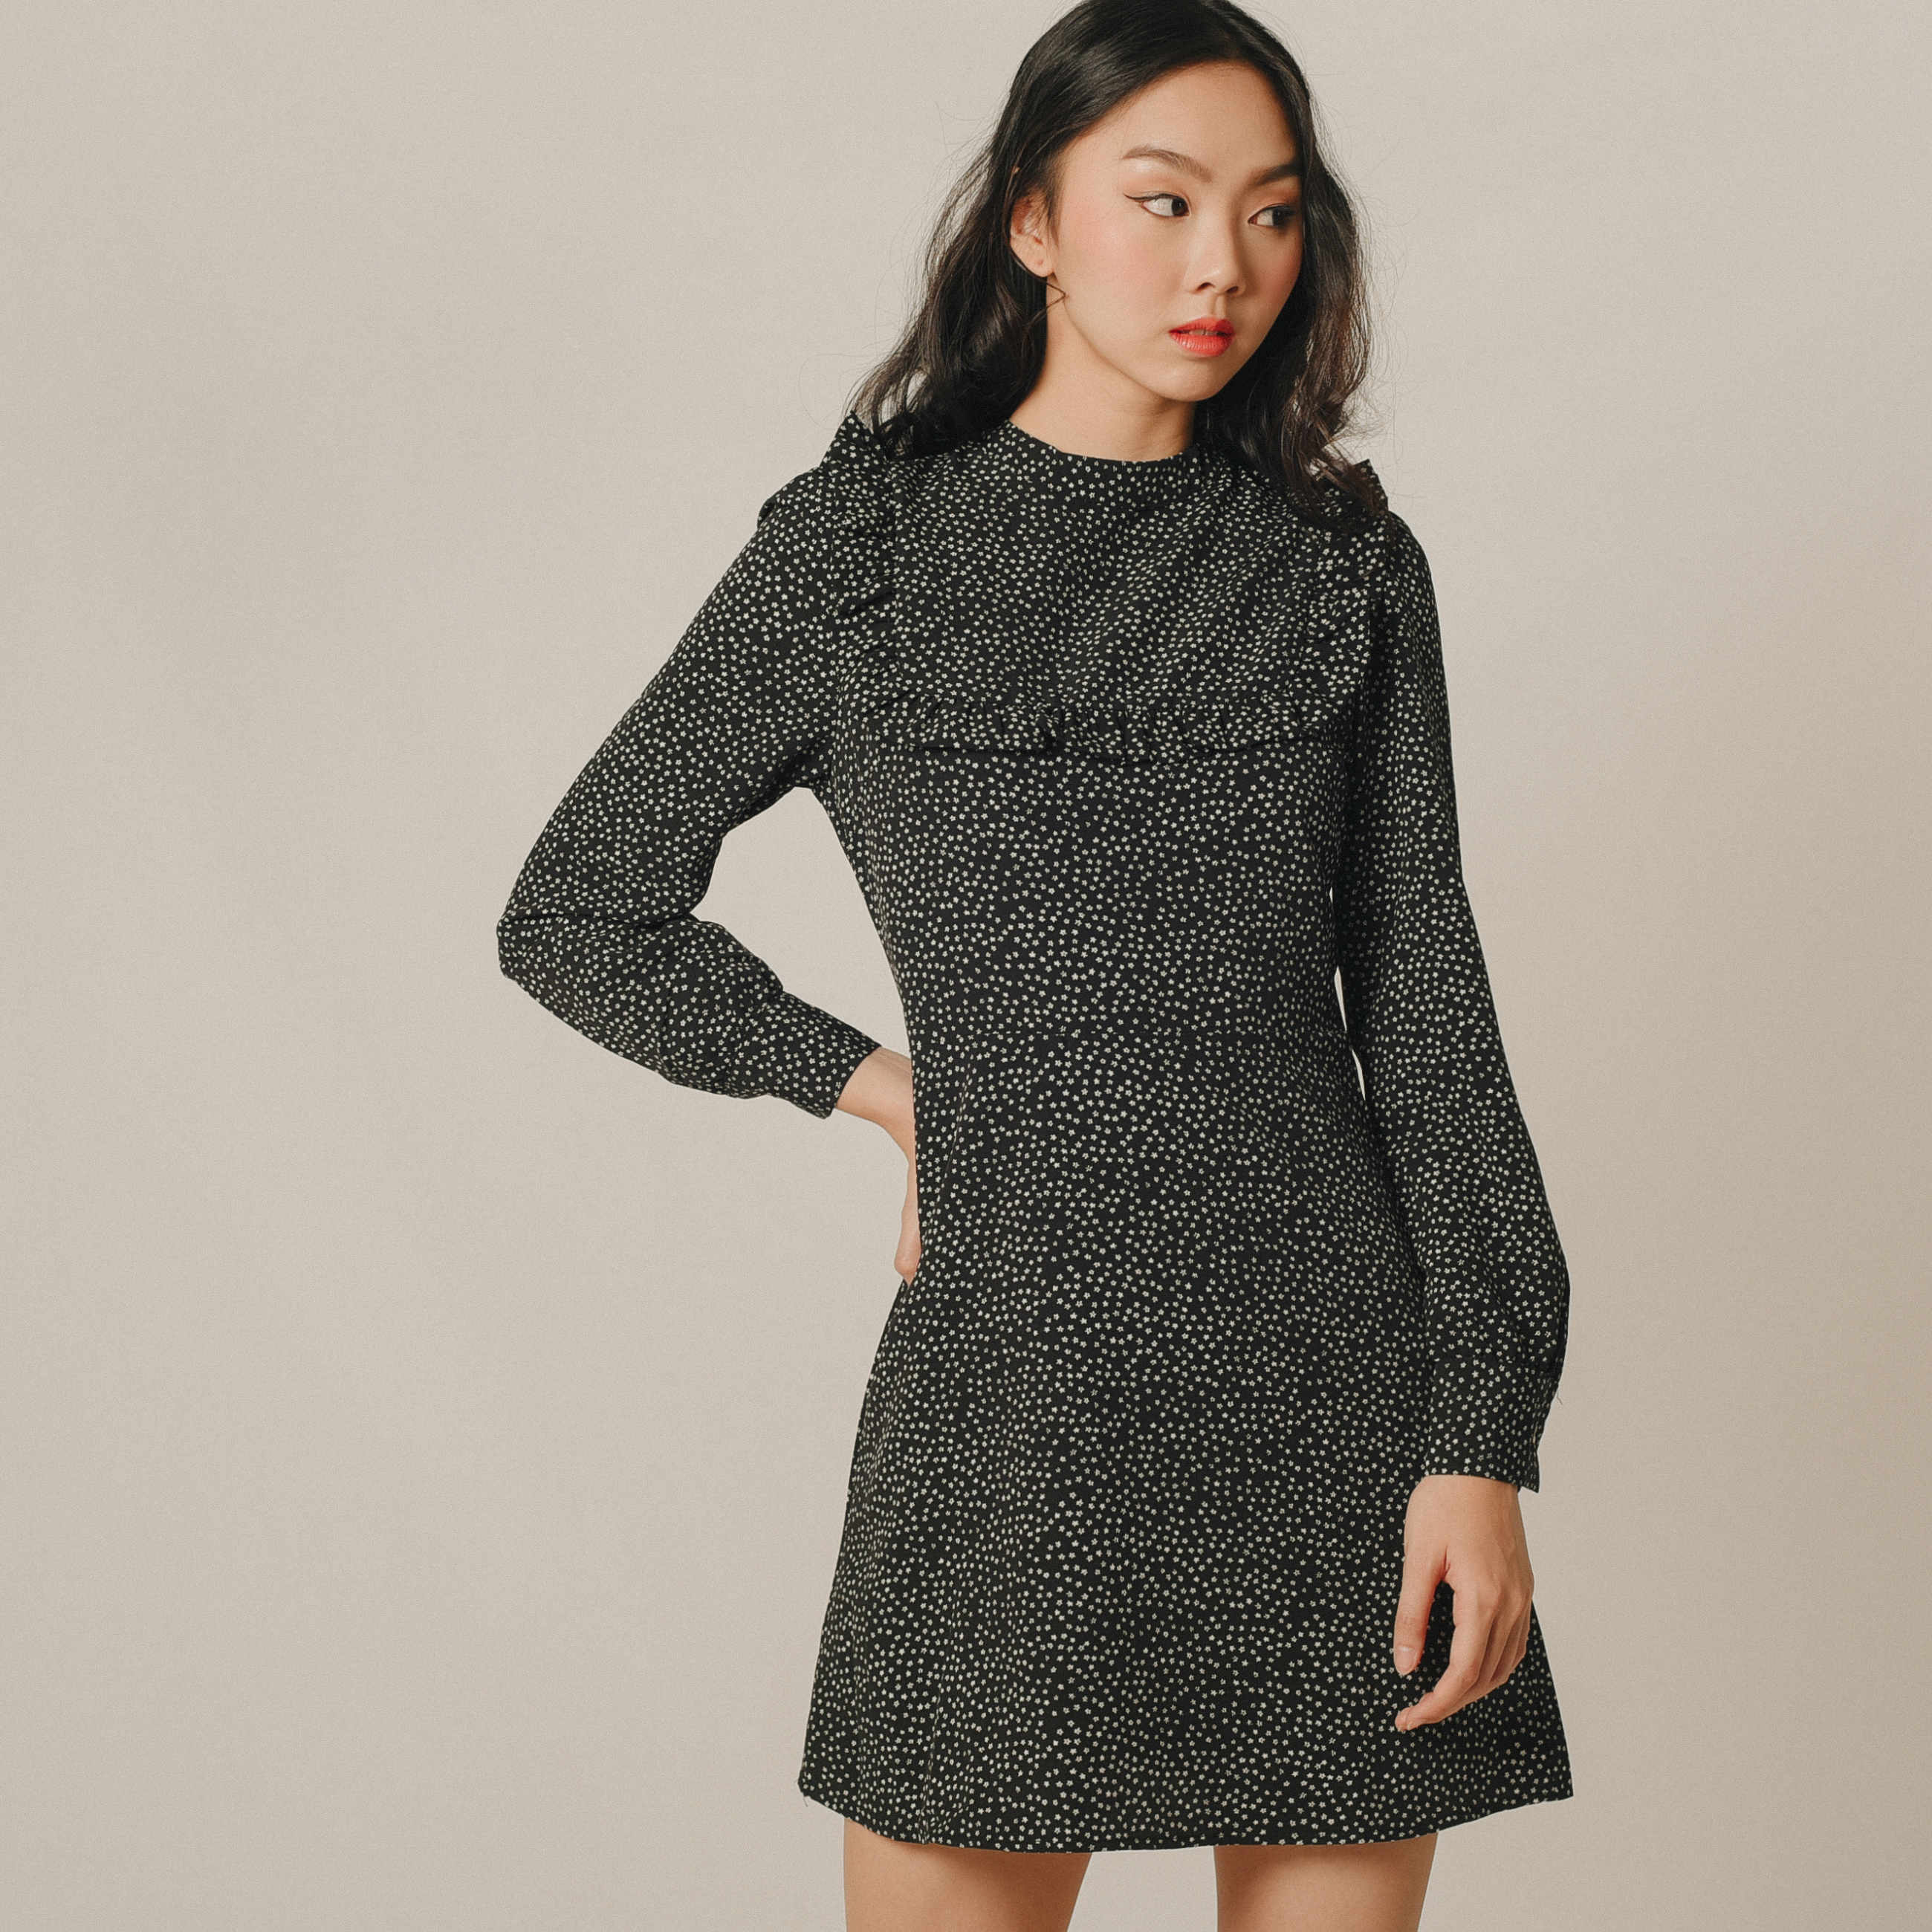 Mychelle High-Neck Dress